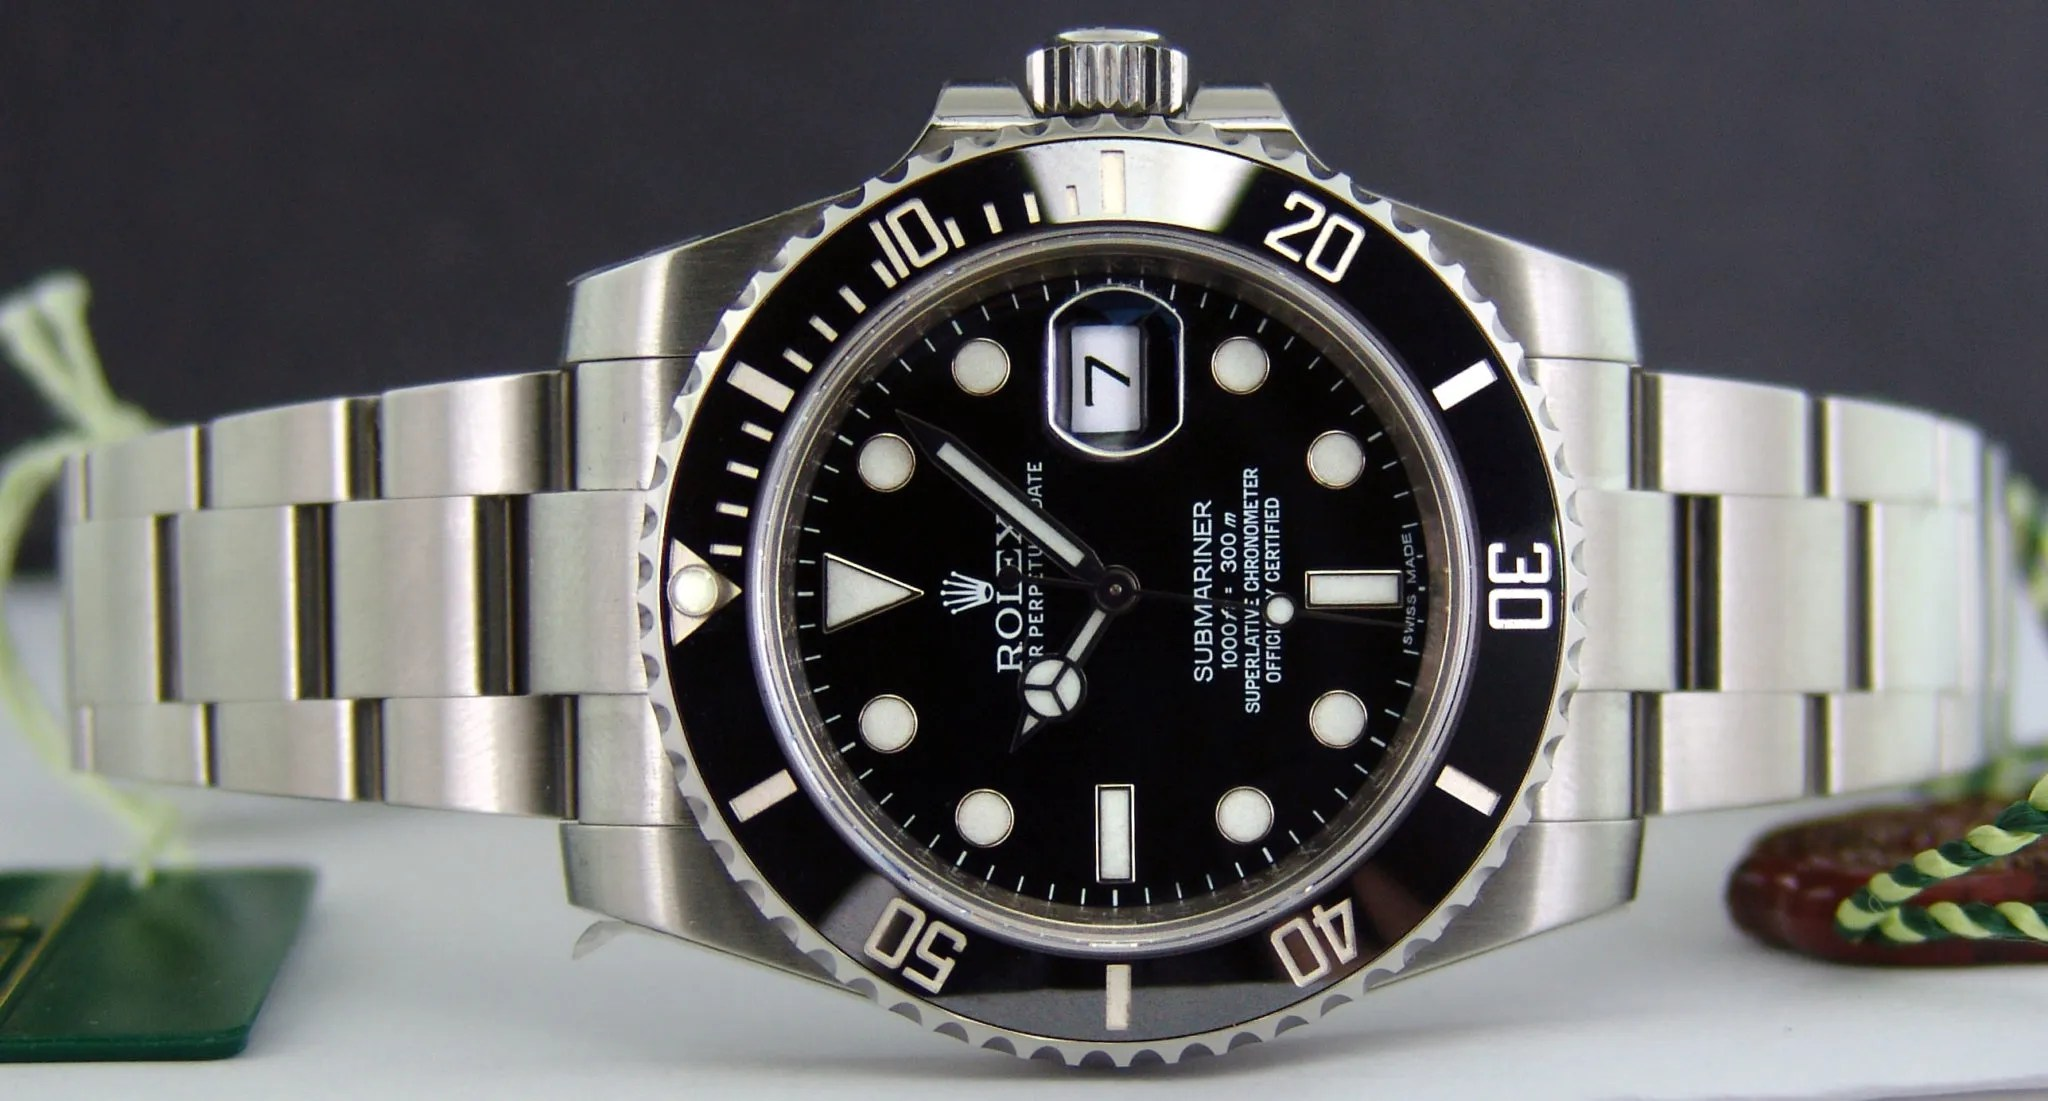 Rolex Submariner Date watch